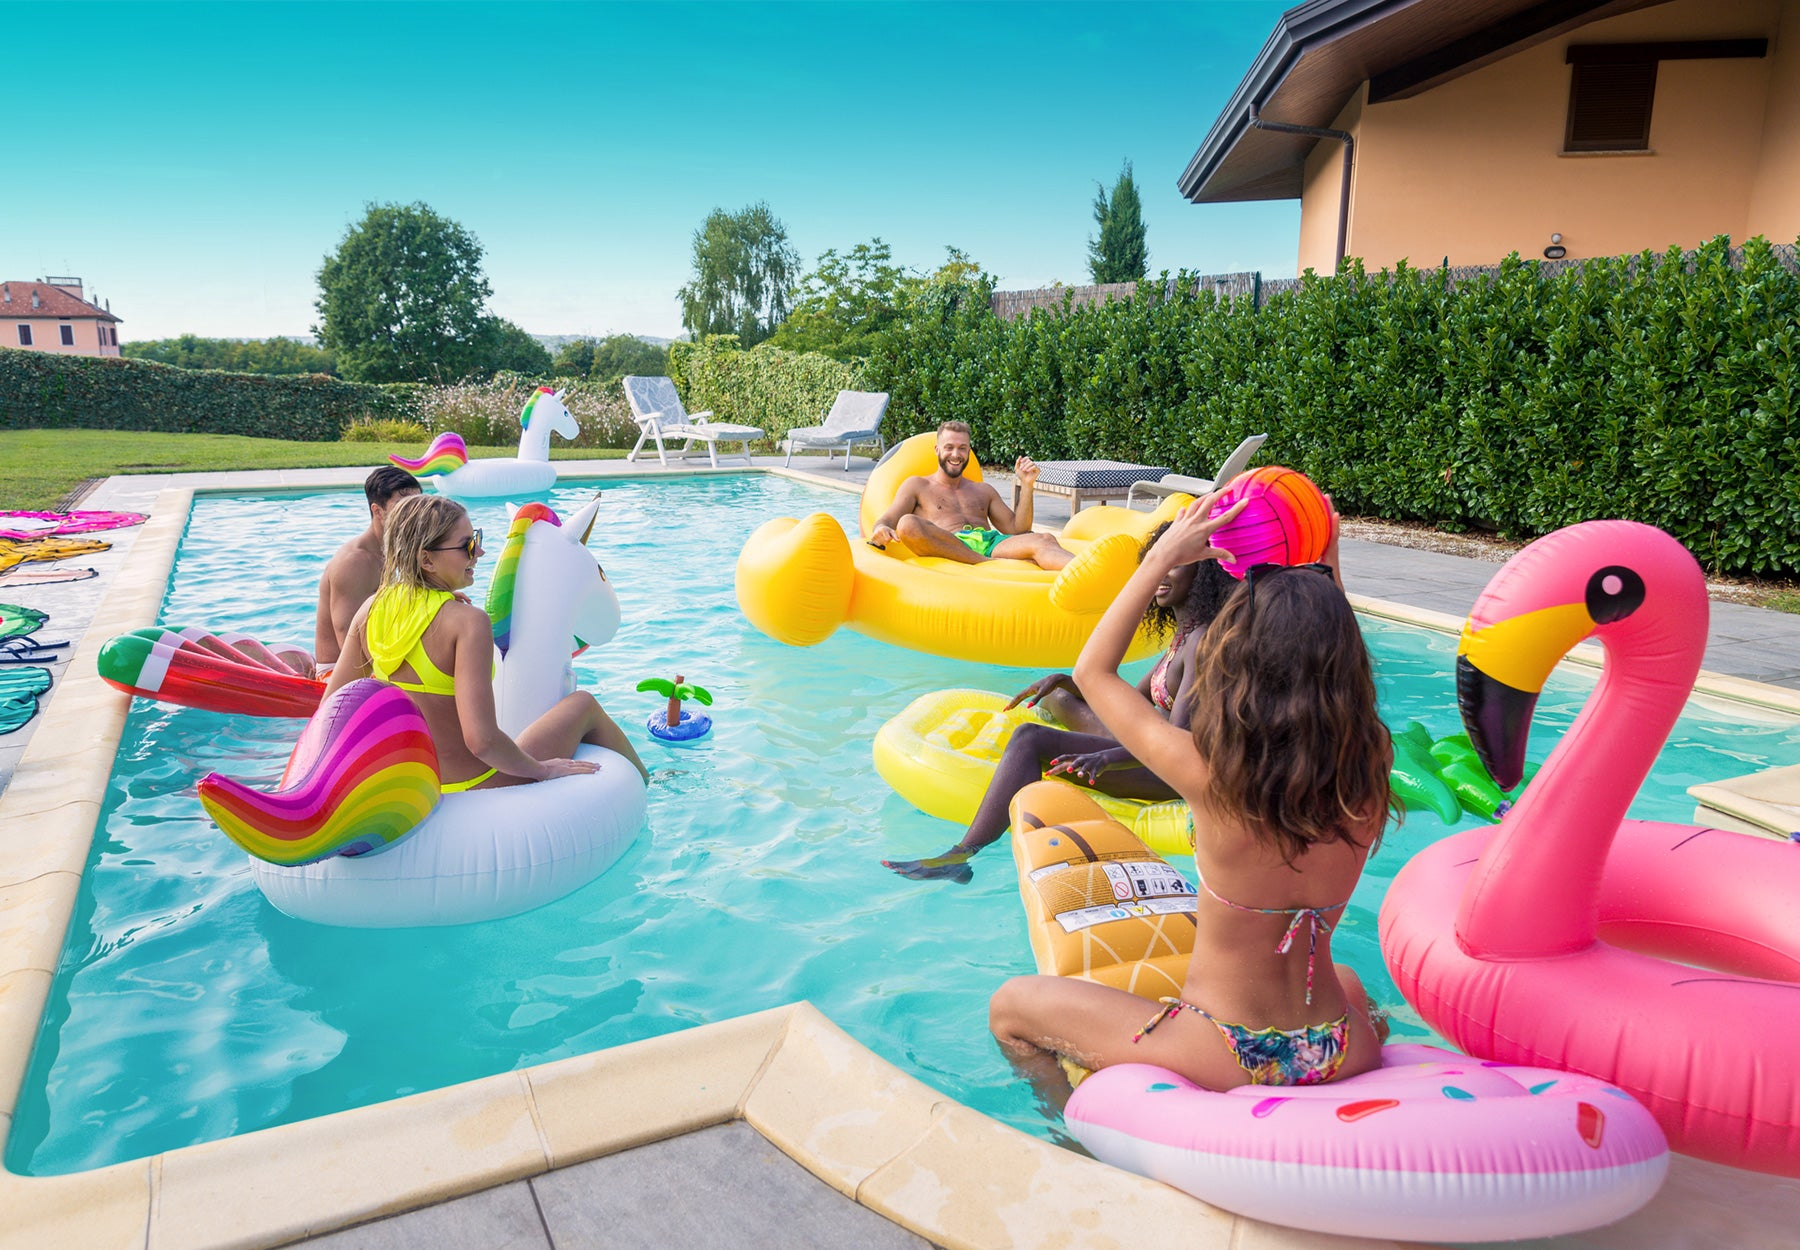 Top 5 things you need for the perfect 4th of July pool party